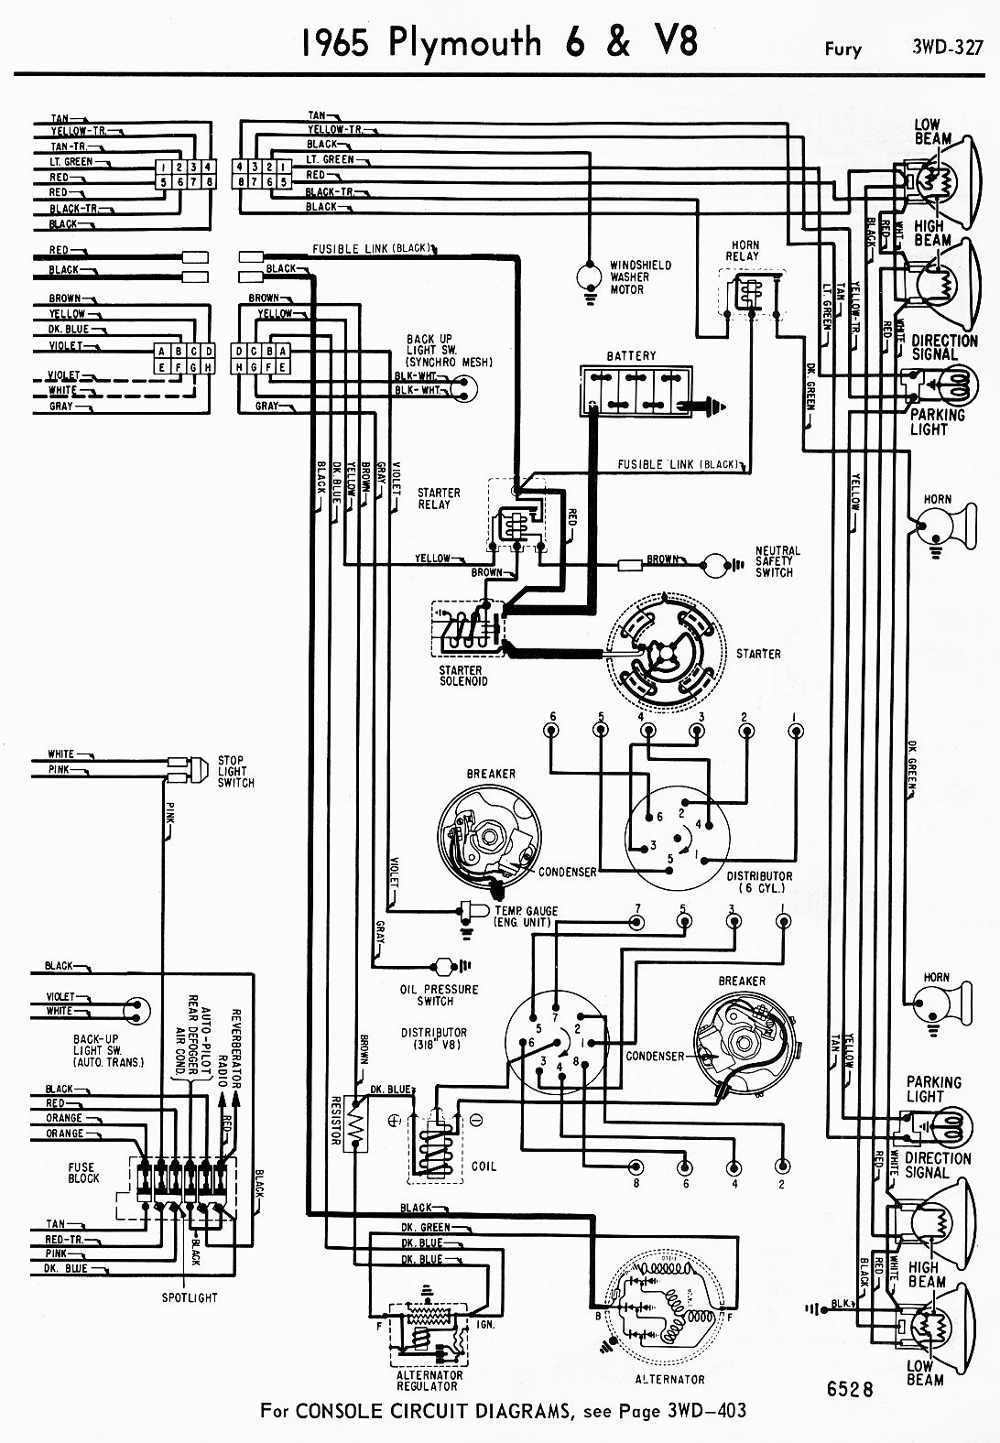 1978 Ford F150 Wiring Diagram together with 89 Ford F 150 Wiper Wiring Diagram besides Wiring Diagram For Ford 3g Alternator moreover 1973 Ford Maverick Fuse Box further 1970 Ford Truck Alternator Wiring Diagram. on 1976 ford f 250 ignition wiring diagram